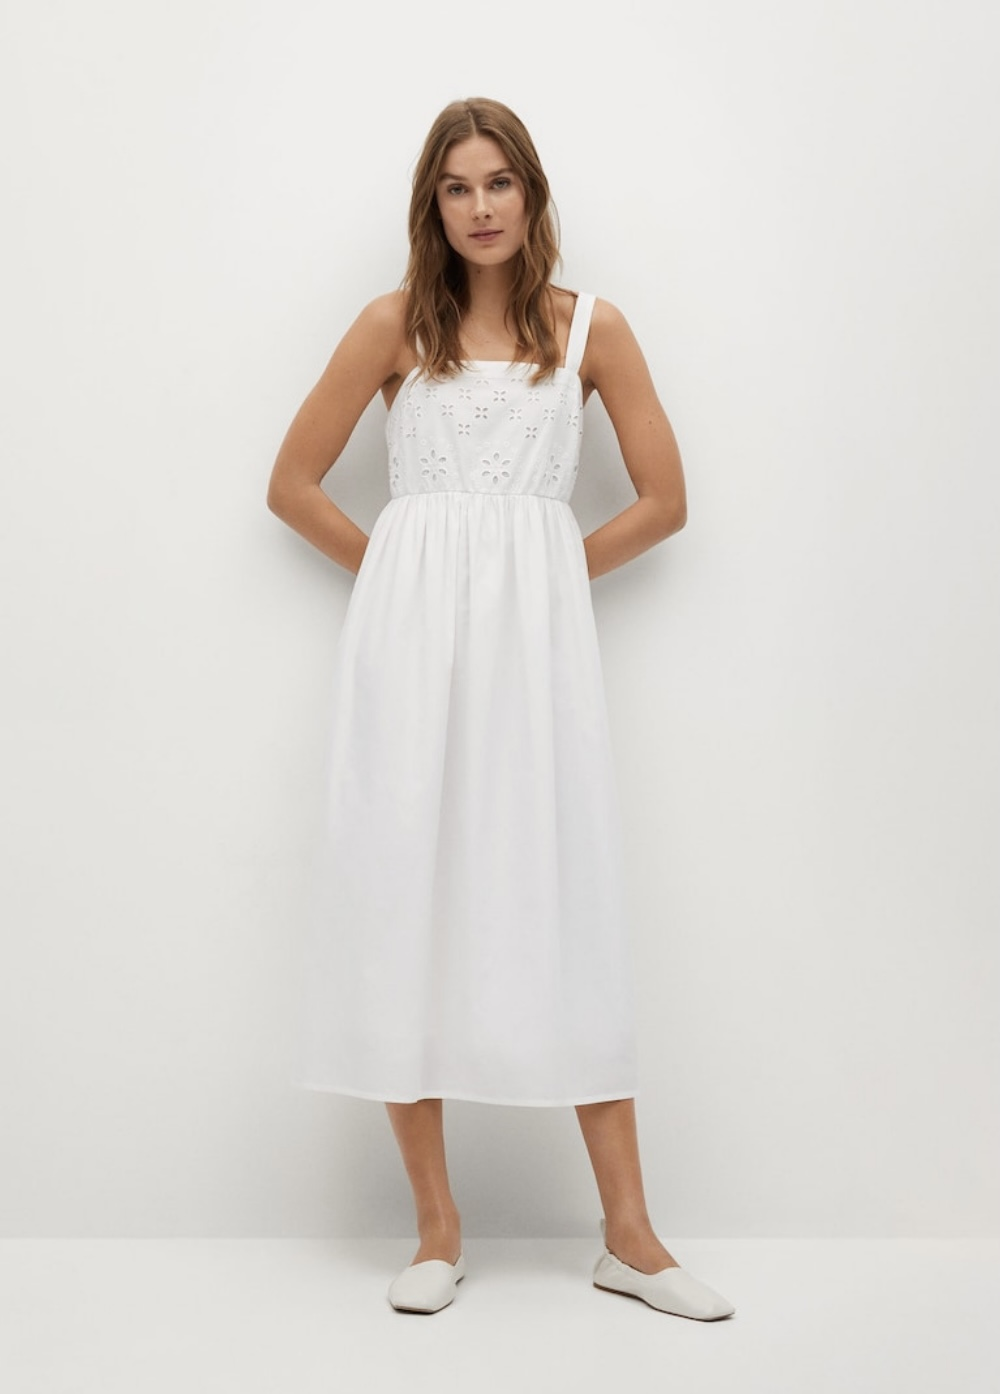 Mango Openwork Cotton Dress